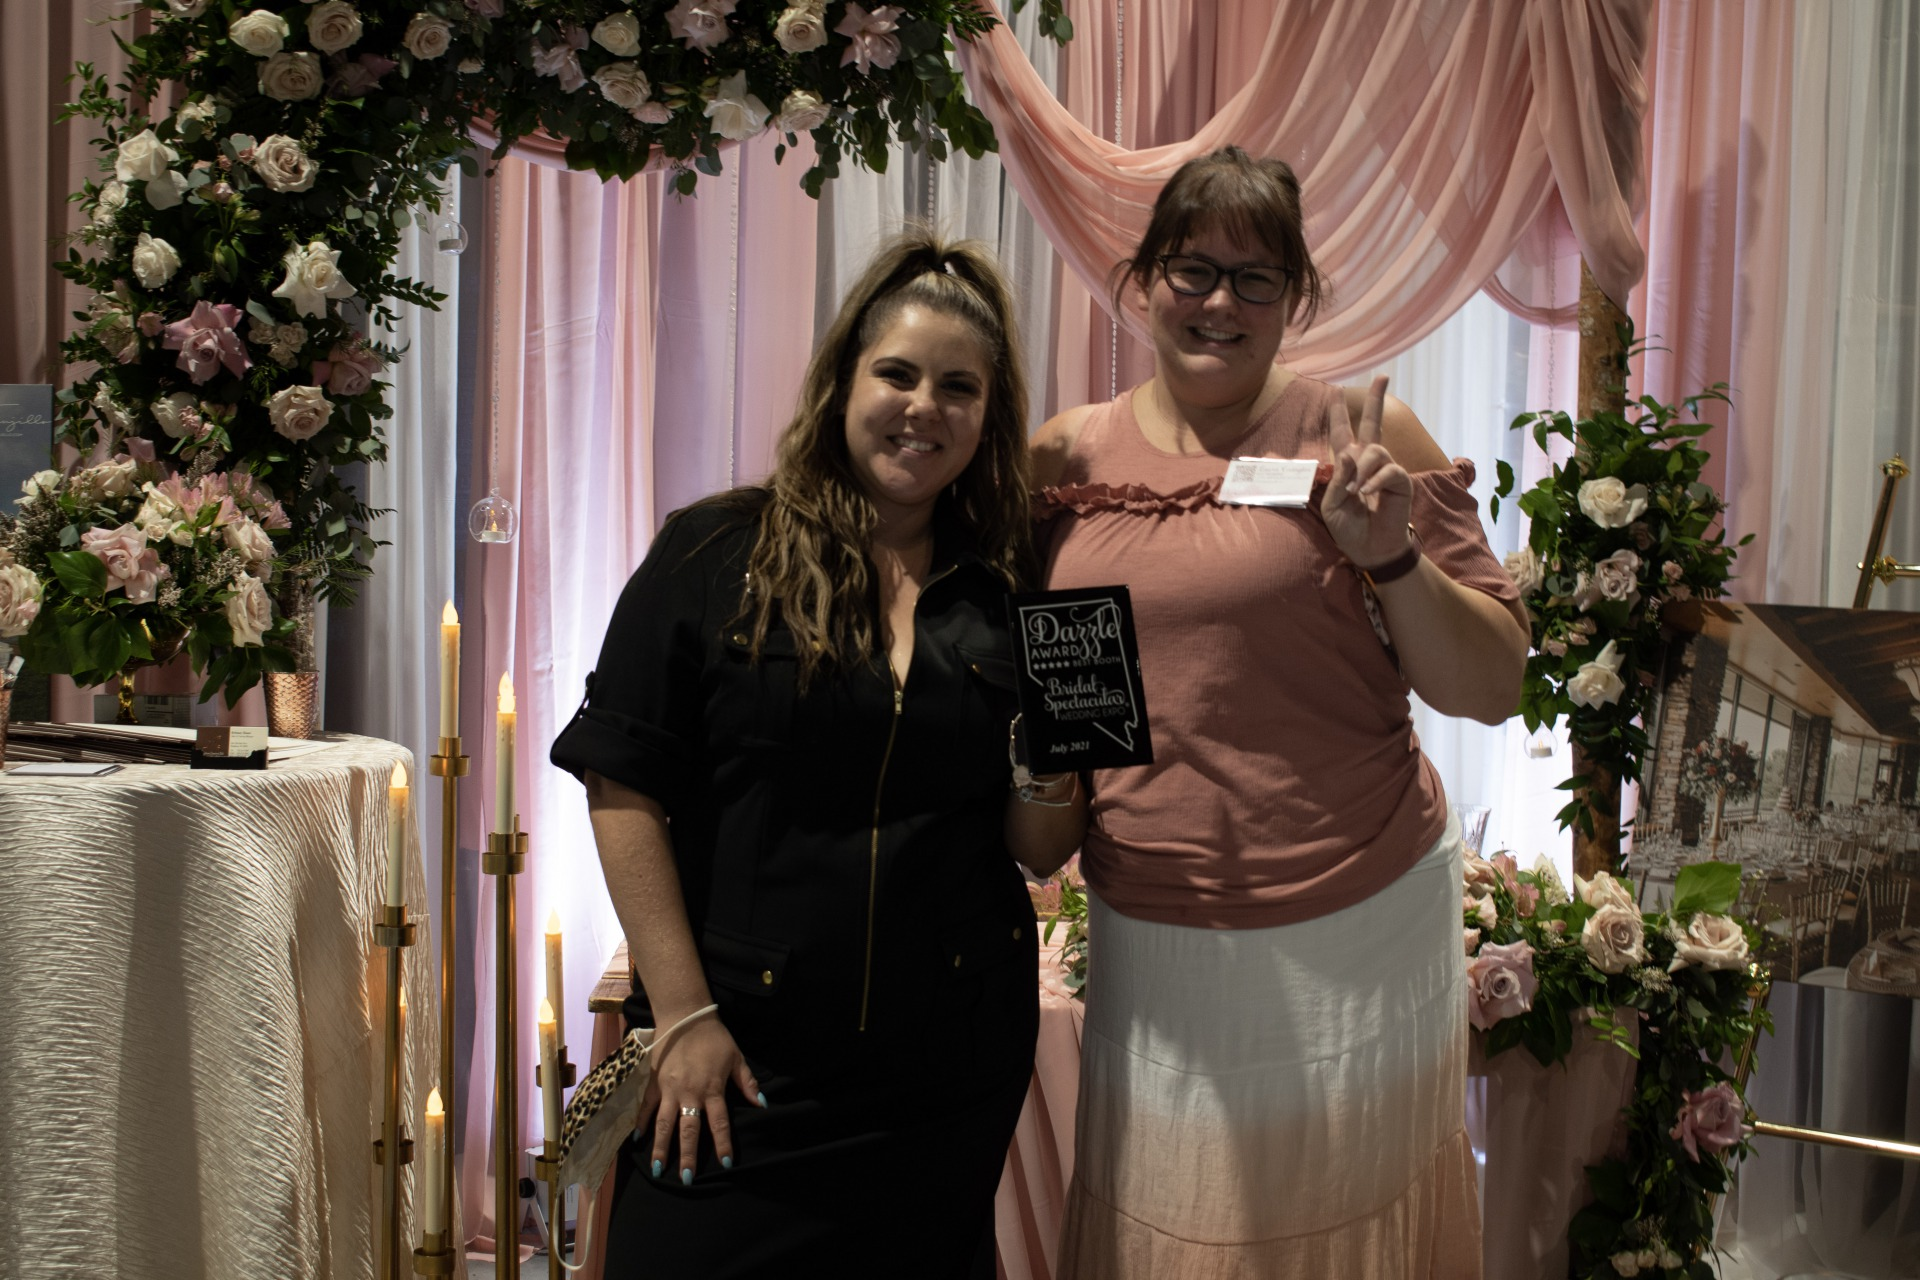 Anthem Country Club booth in petal pink with stunning flowers wins a dazzle award